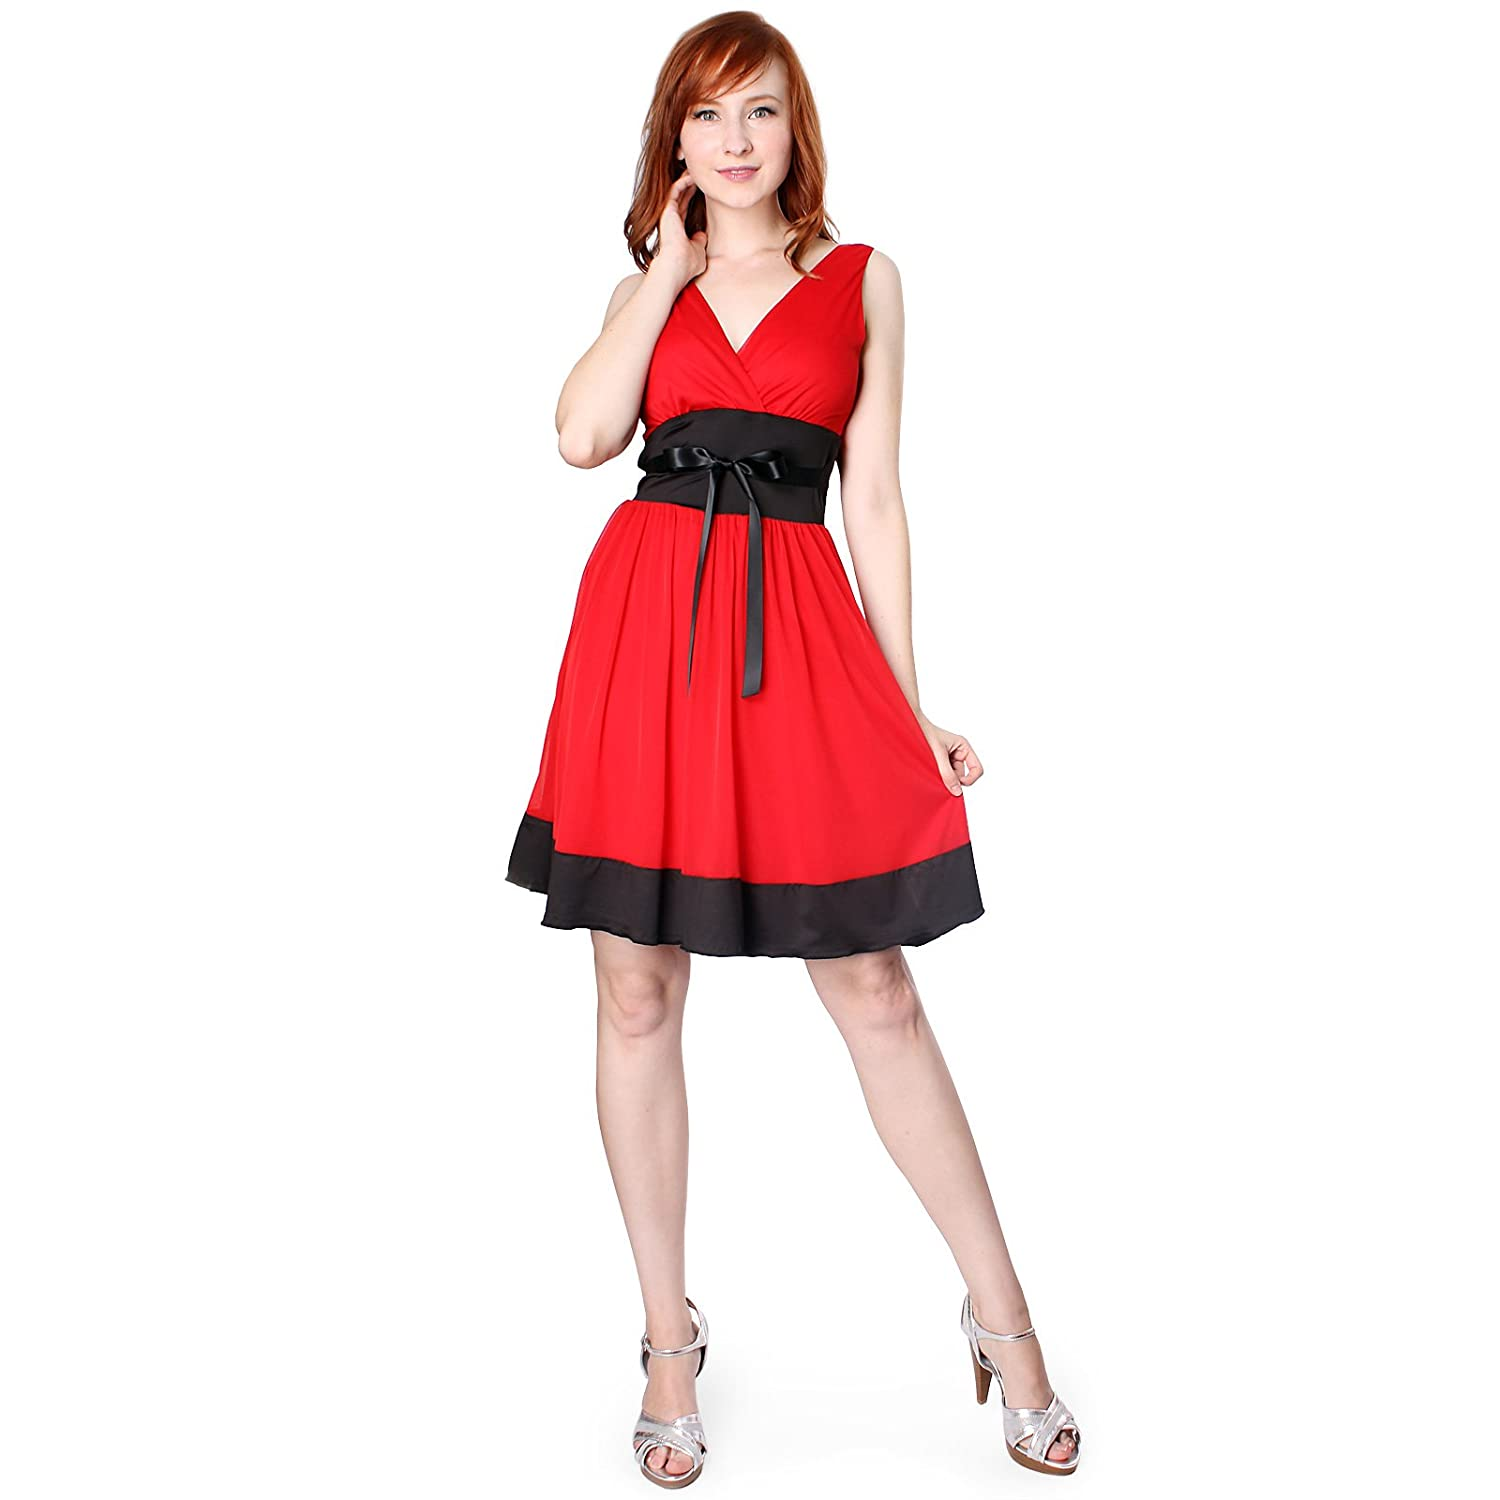 EVANESE Womens Short Evening Cocktail Knee Length Dress With Satin Tapes XL Red//Black